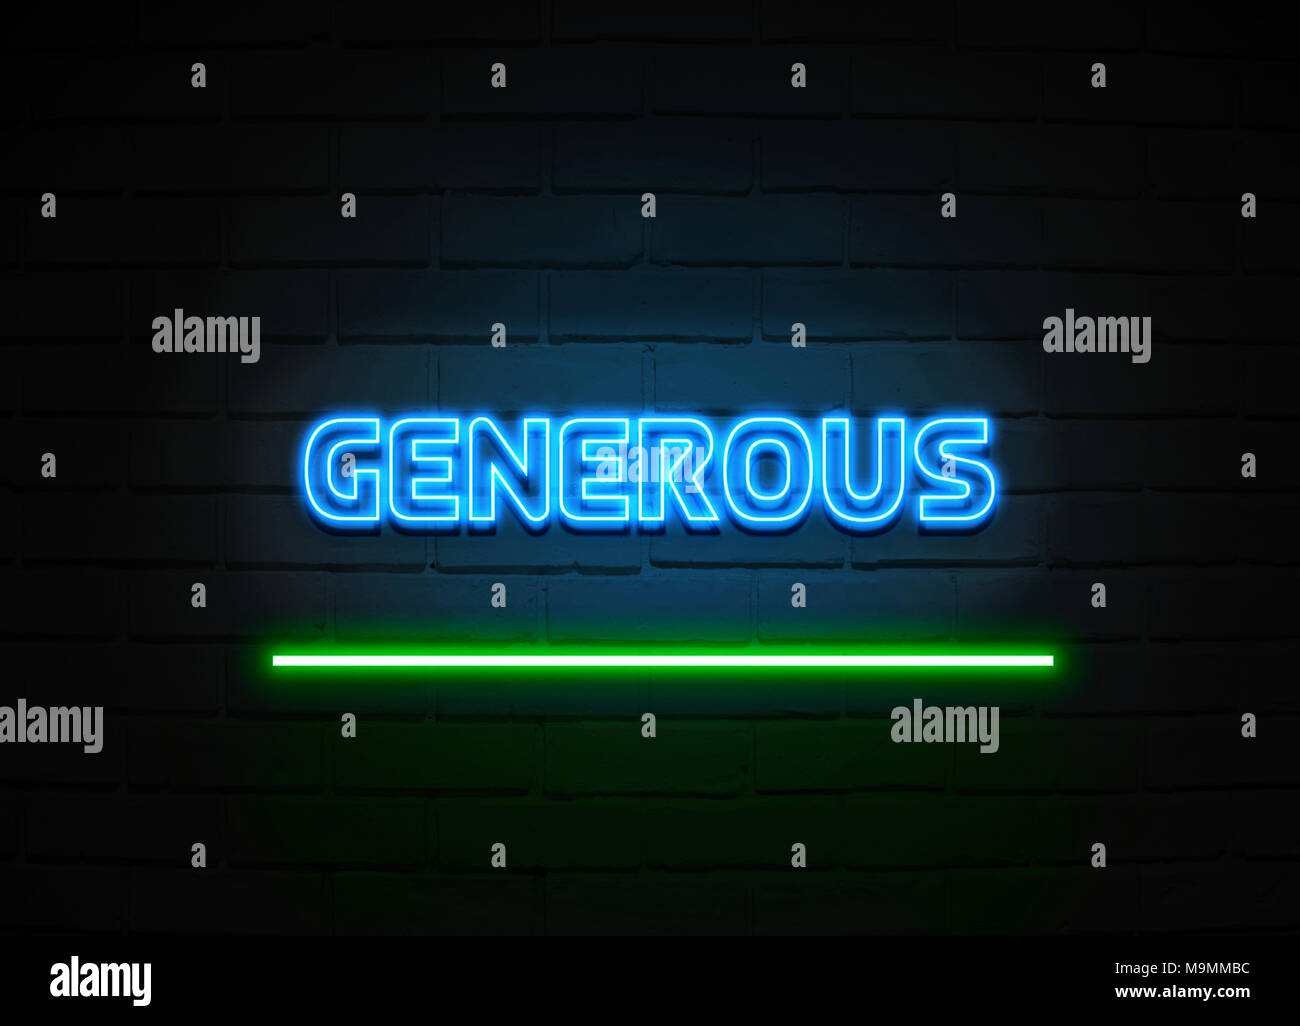 Generous neon sign - Glowing Neon Sign on brickwall wall - 3D rendered royalty free stock illustration. - Stock Image